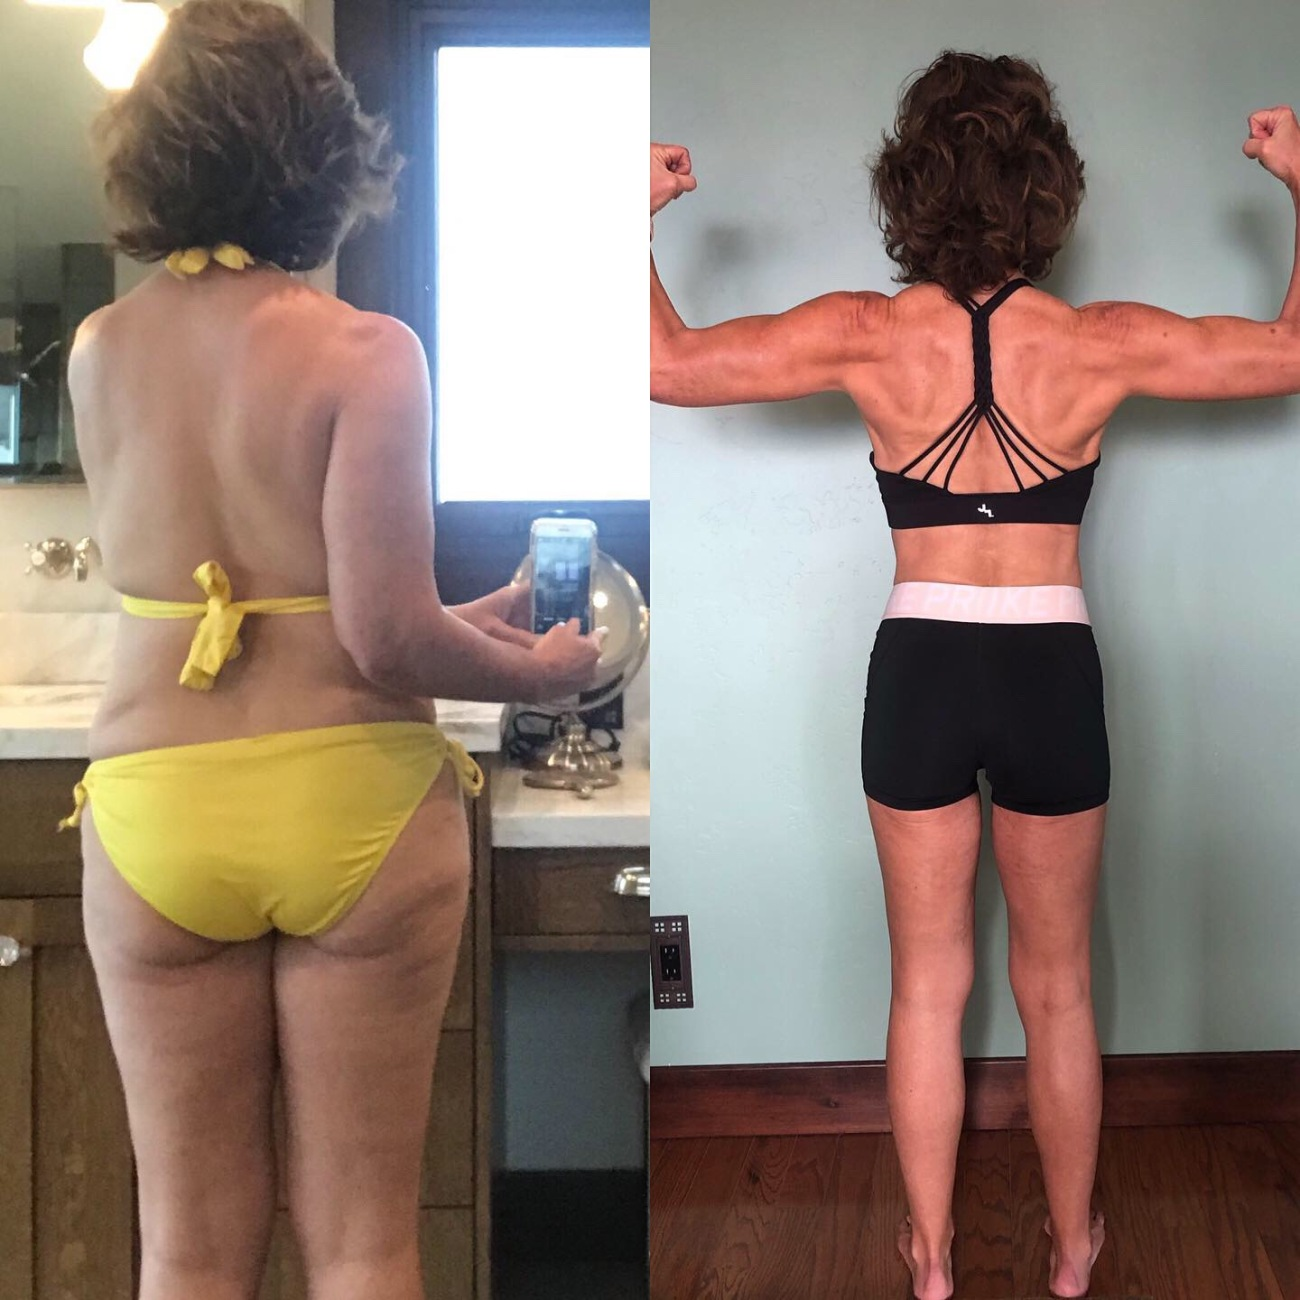 two images side by side showing changes in a woman's body, the image on the left shows less muscle, but the image on the right, the woman is flexing her biceps